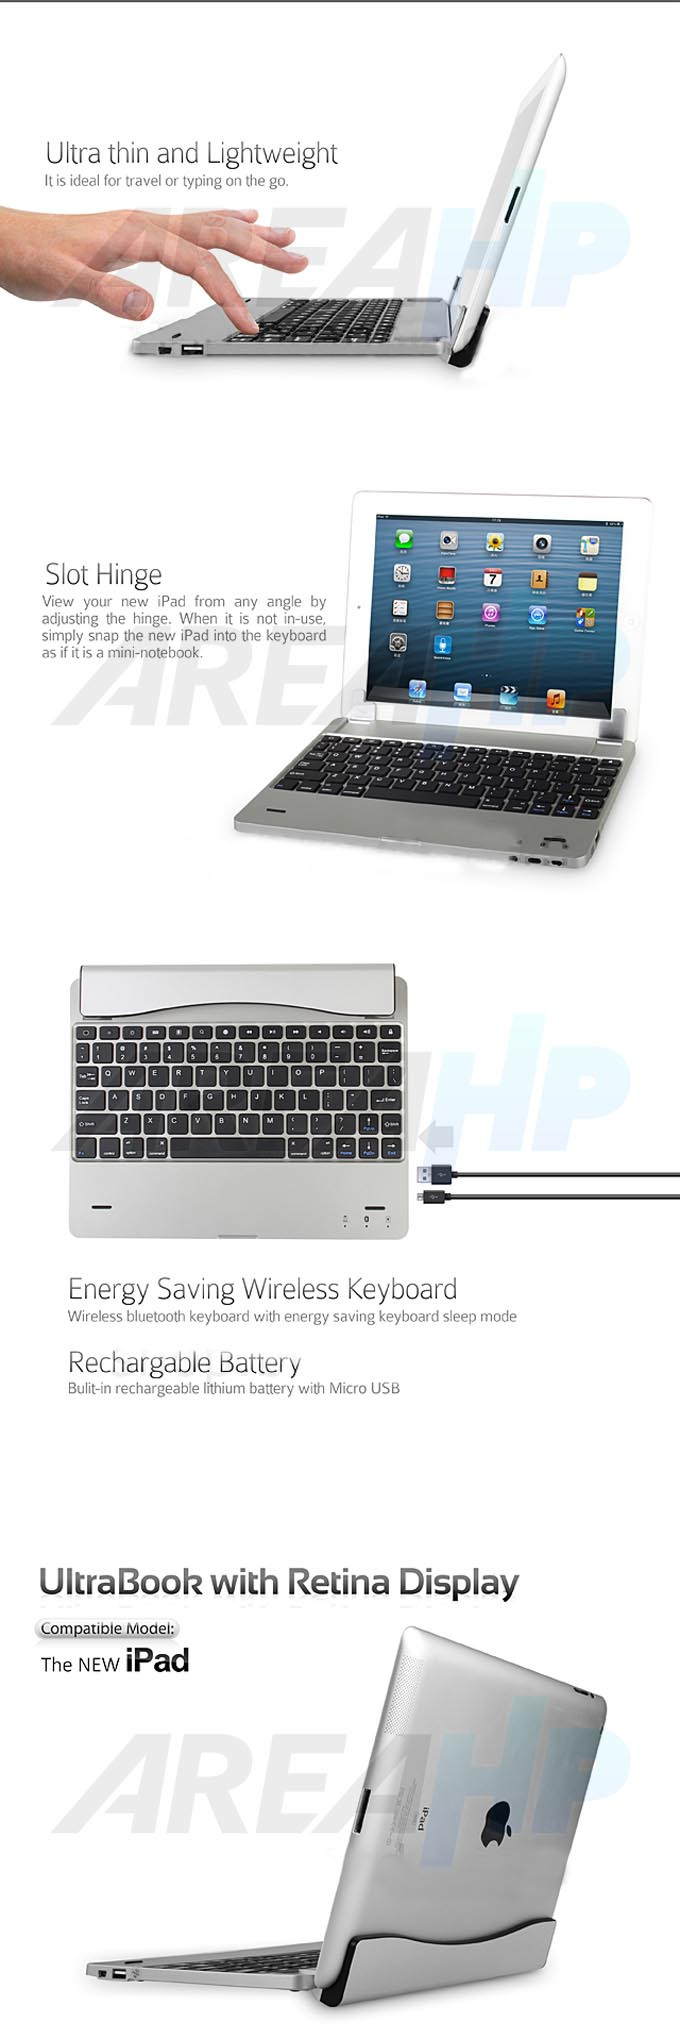 Ultra Slim Keyboard Cover for iPad 2, 3, 4 Overview